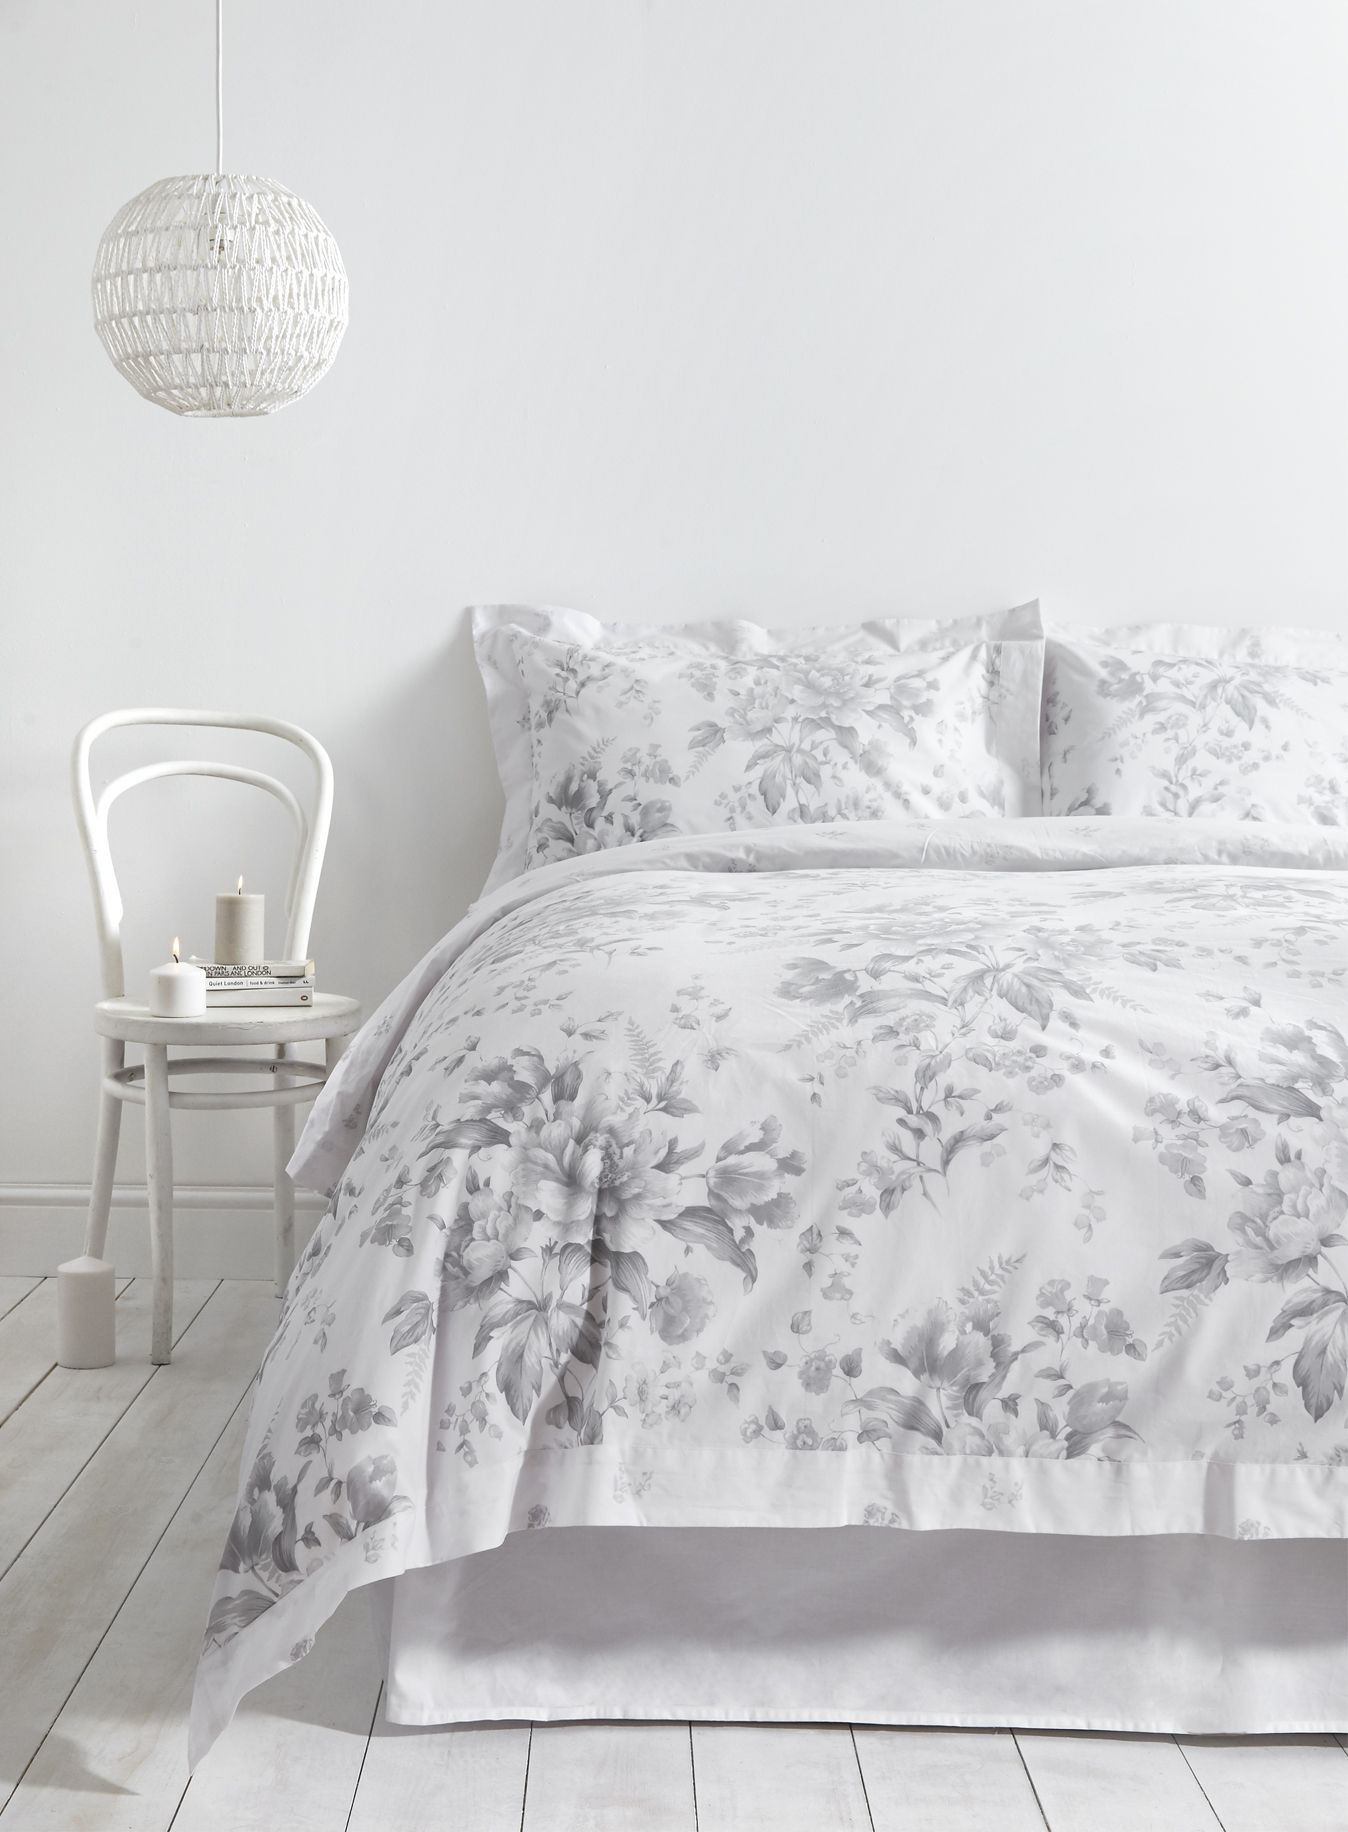 Holly Willoughby Rugby Fl Duvet Cover From This Ruby Bed Linen Range Has A Sophisticated Grey Pattern Set Against Crisp White